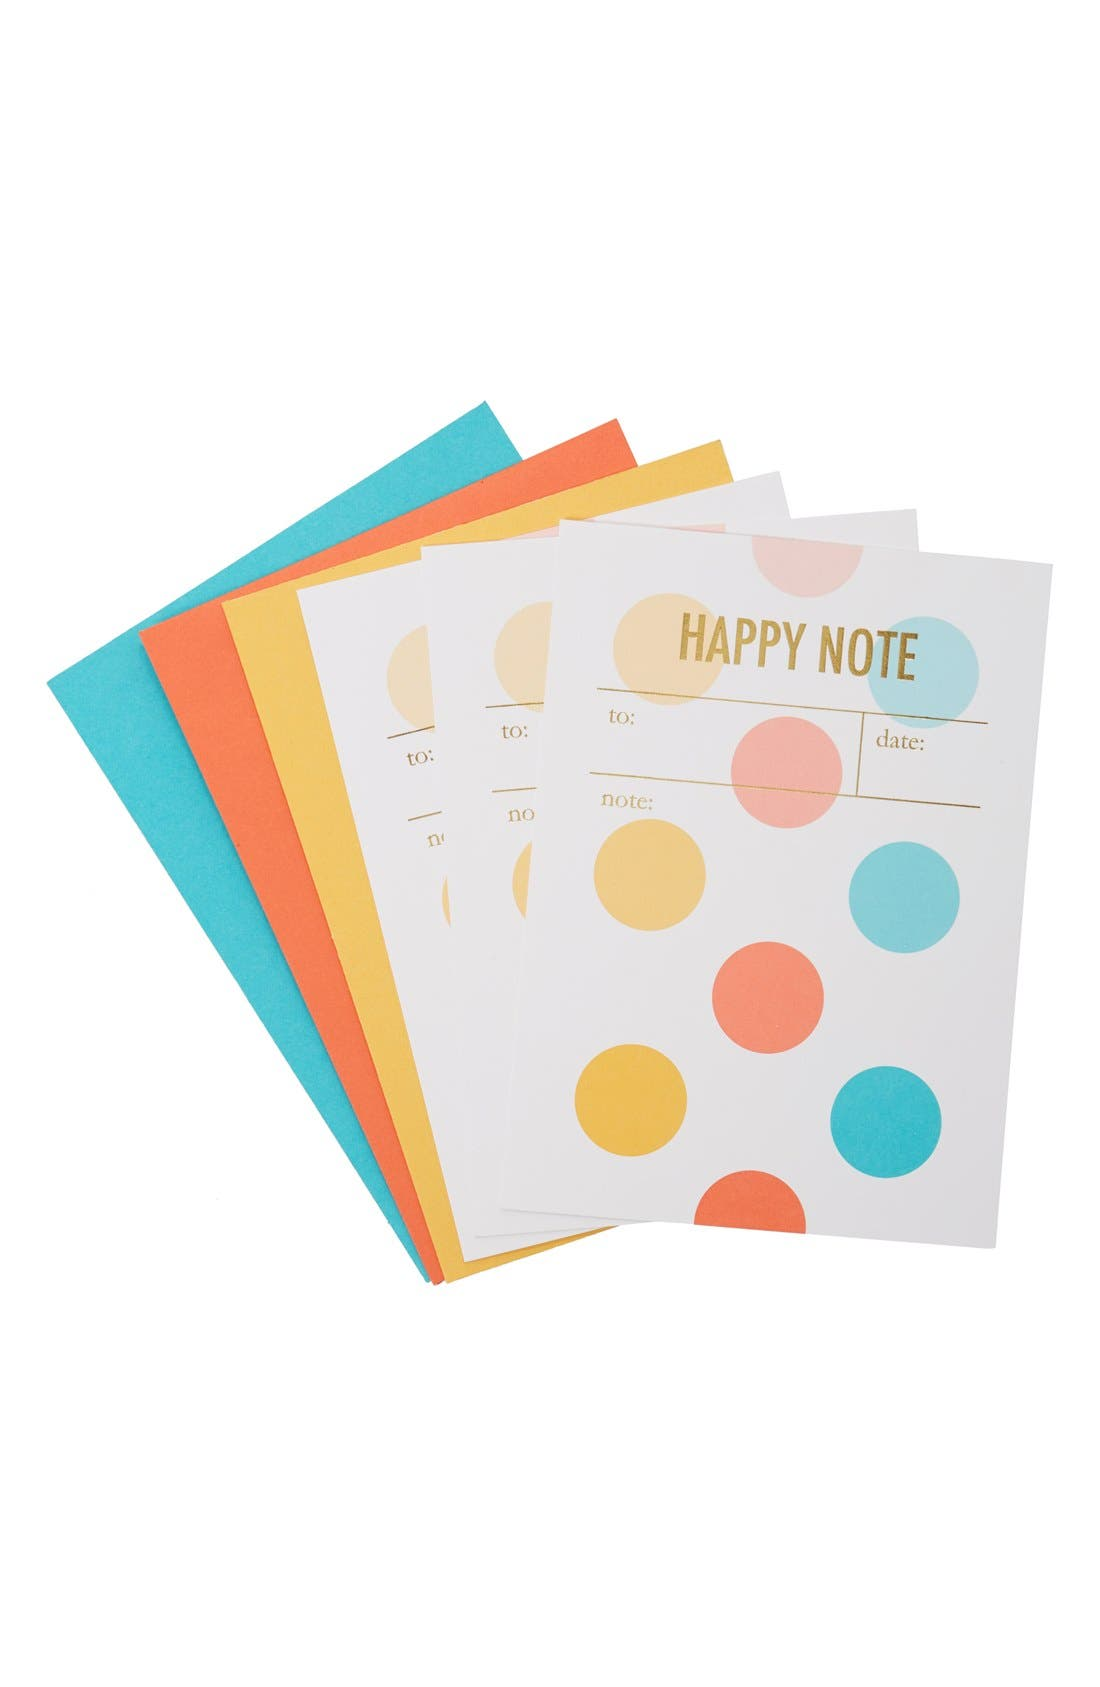 Alternate Image 1 Selected - Tokketok 'Happy Note' Letterpress Cards & Envelopes (Set of 3)